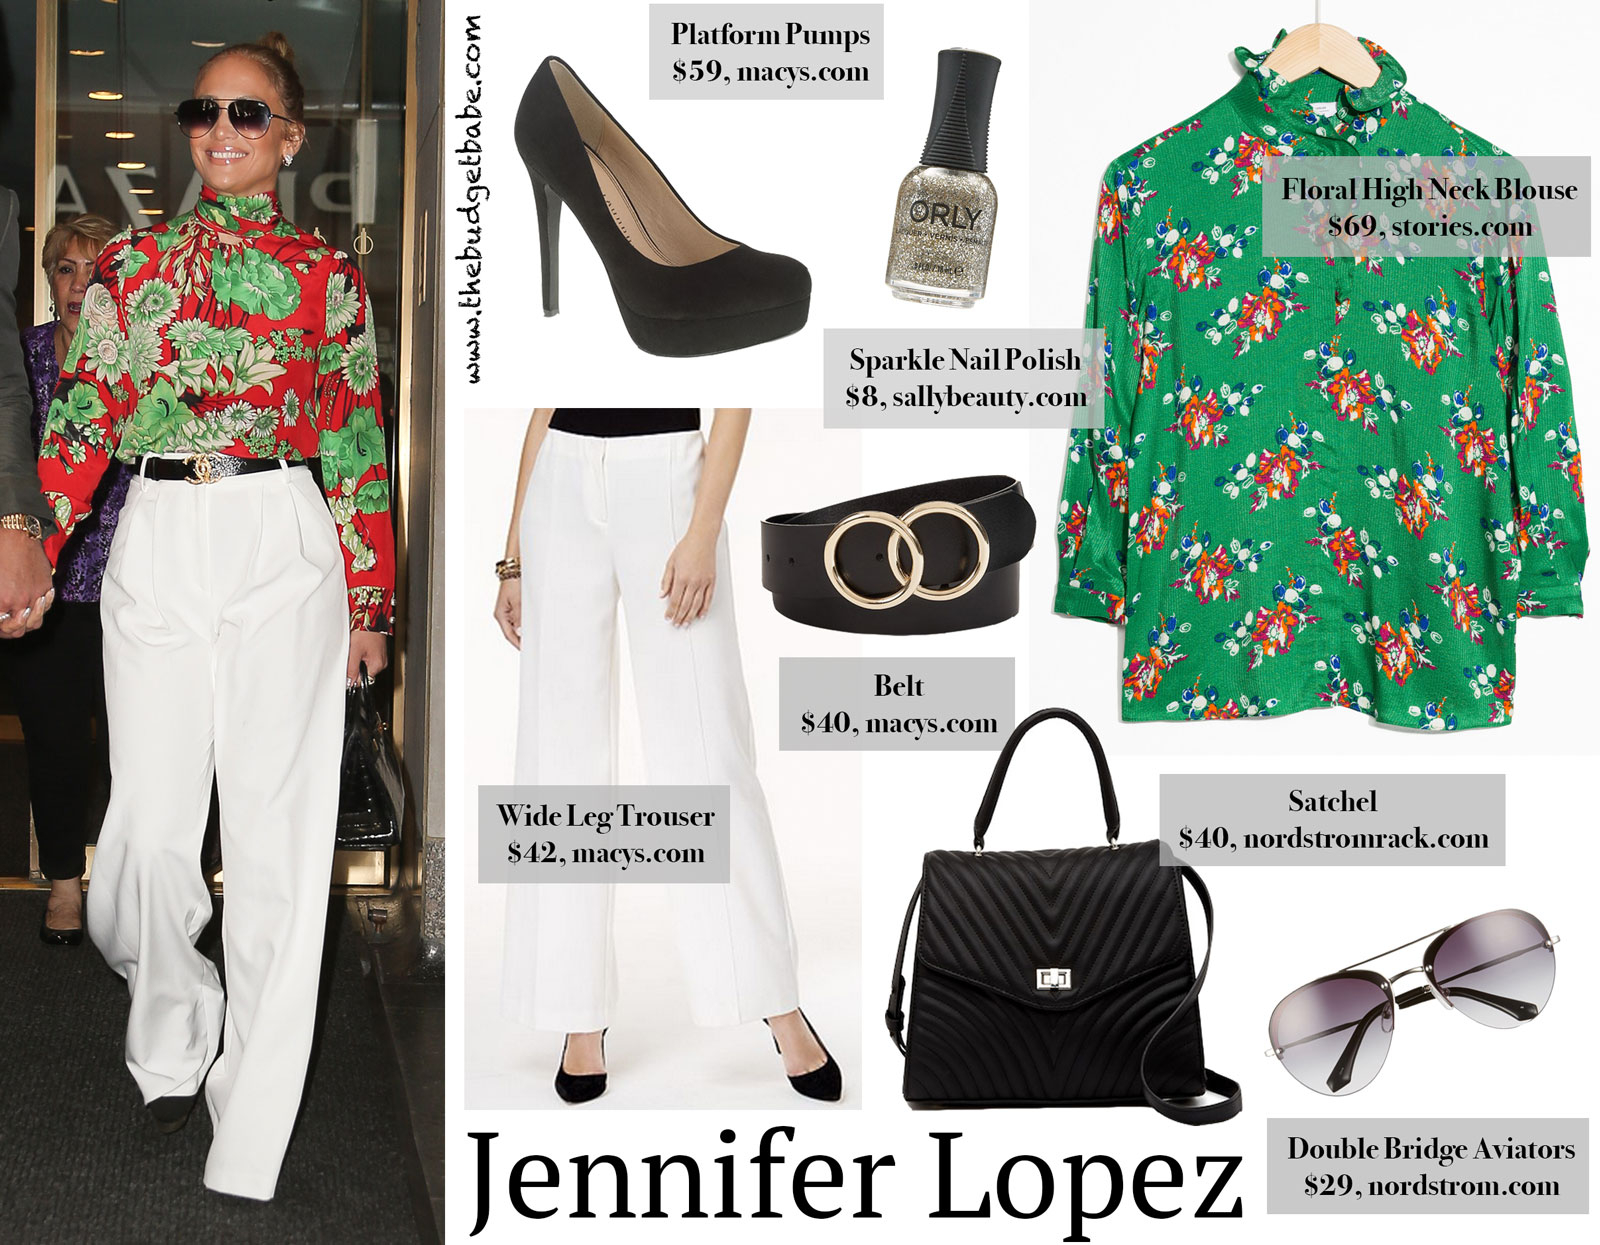 2c7a5314b21c Jennifer Lopez - The Budget Babe | Affordable Fashion & Style Blog